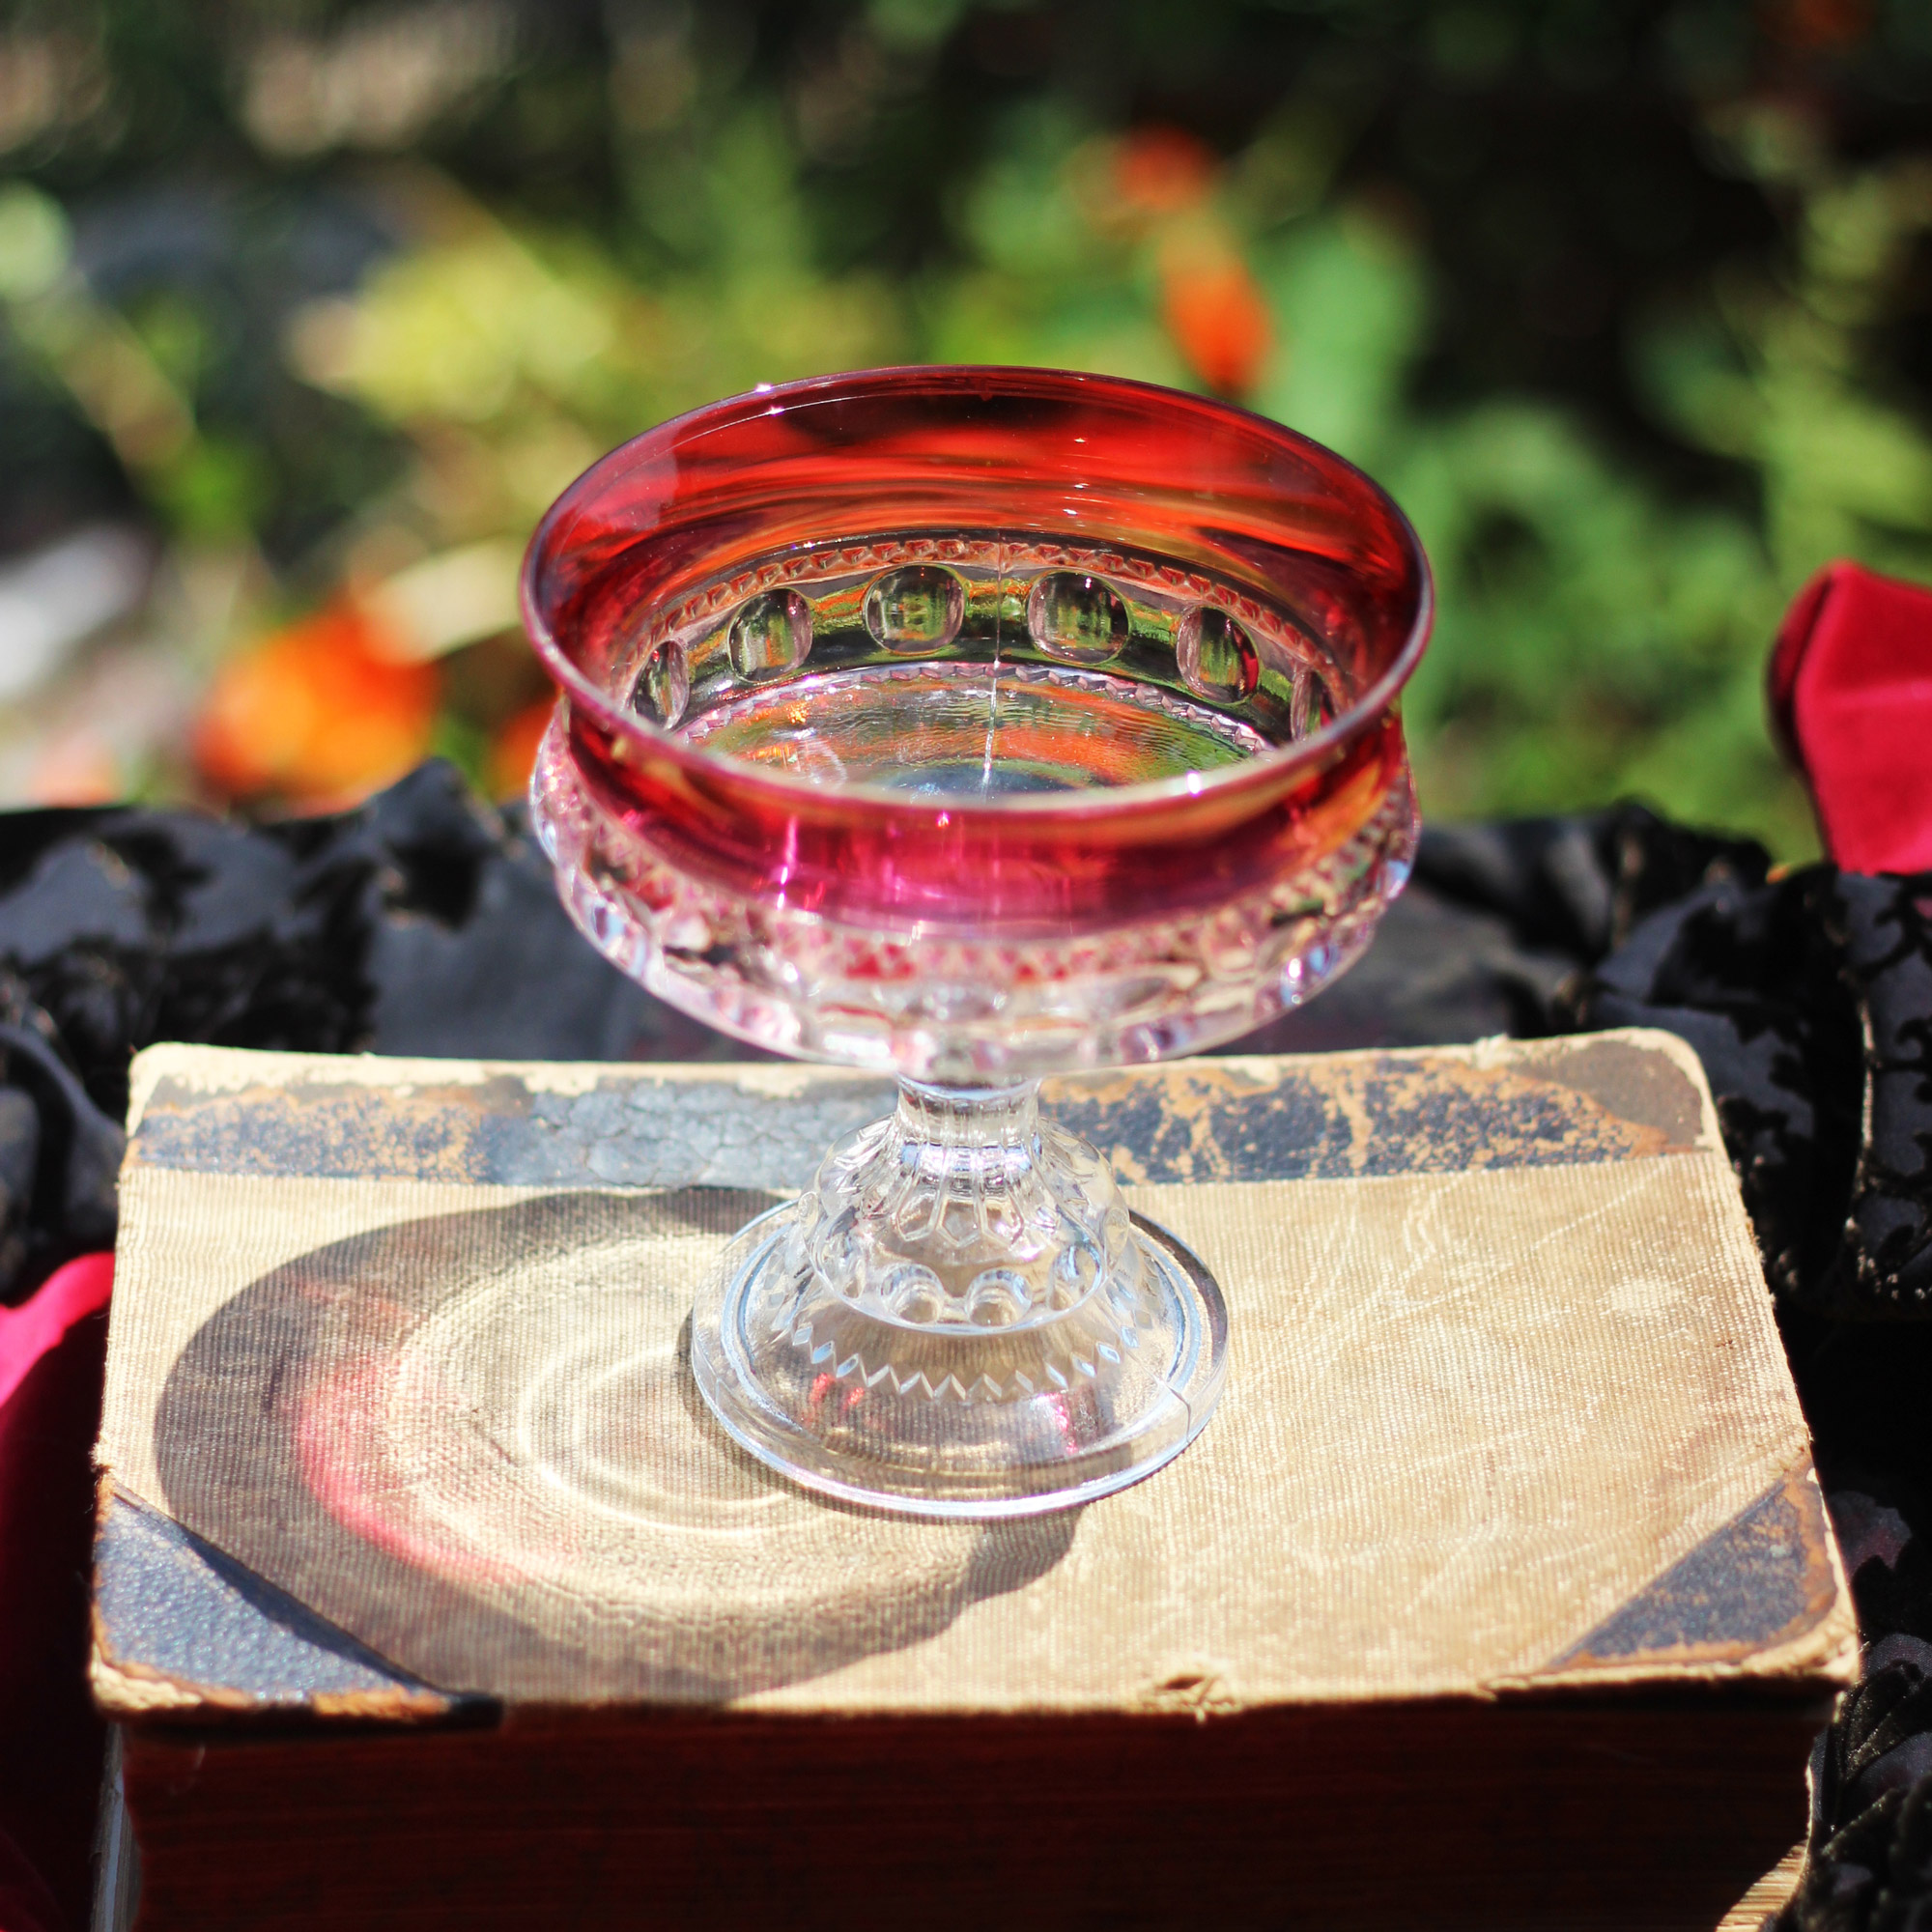 Like Dorothy's ruby red slippers, this compote is also ruby red.